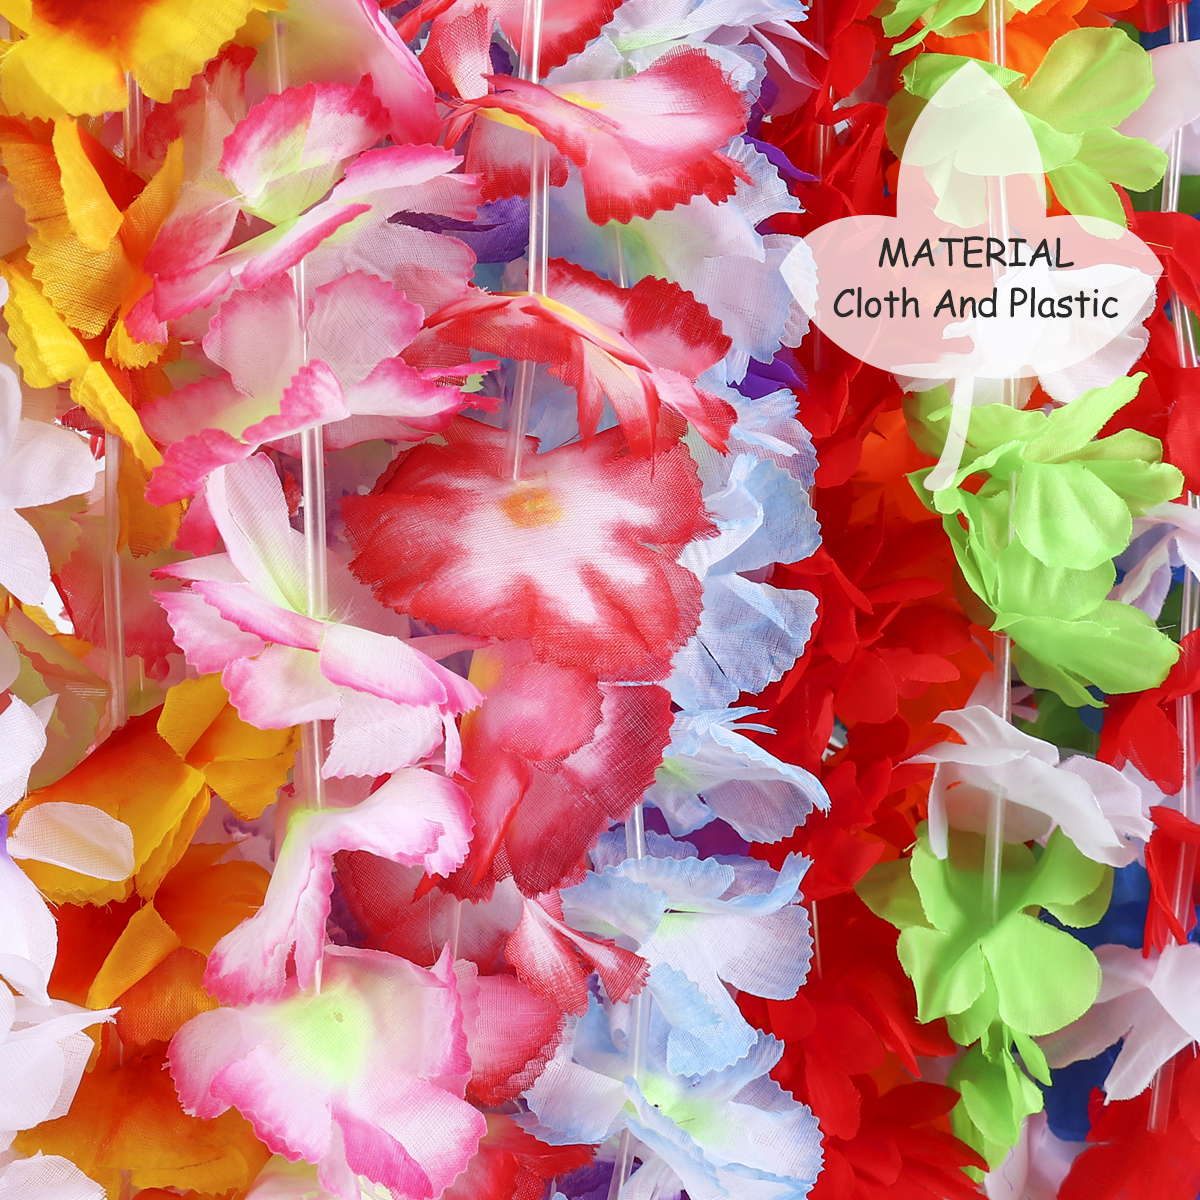 Bestoyard 48pcs hawaiian ruffled silk flower leis luau floral leis bestoyard 48pcs hawaiian ruffled silk flower leis luau floral leis for holiday wedding beach birthday decorationsrandom colors mightylinksfo